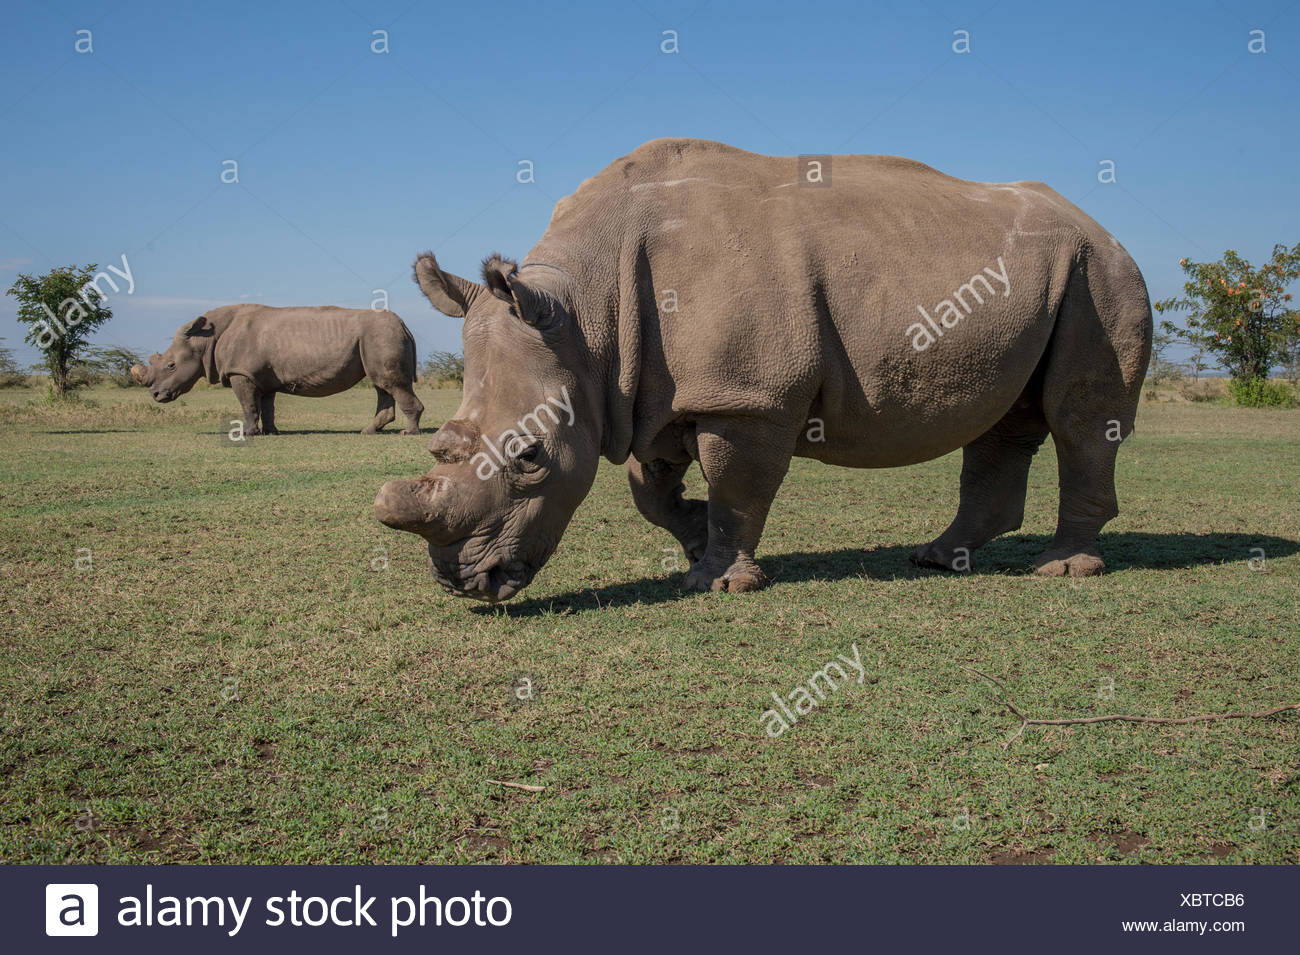 Sudan is one of the last four northern white rhinoceroses brought from a zoo in the Czech Republic to Ol Pejeta Nature Conservancy, in an effort to breed the almost extinct species. - Stock Image